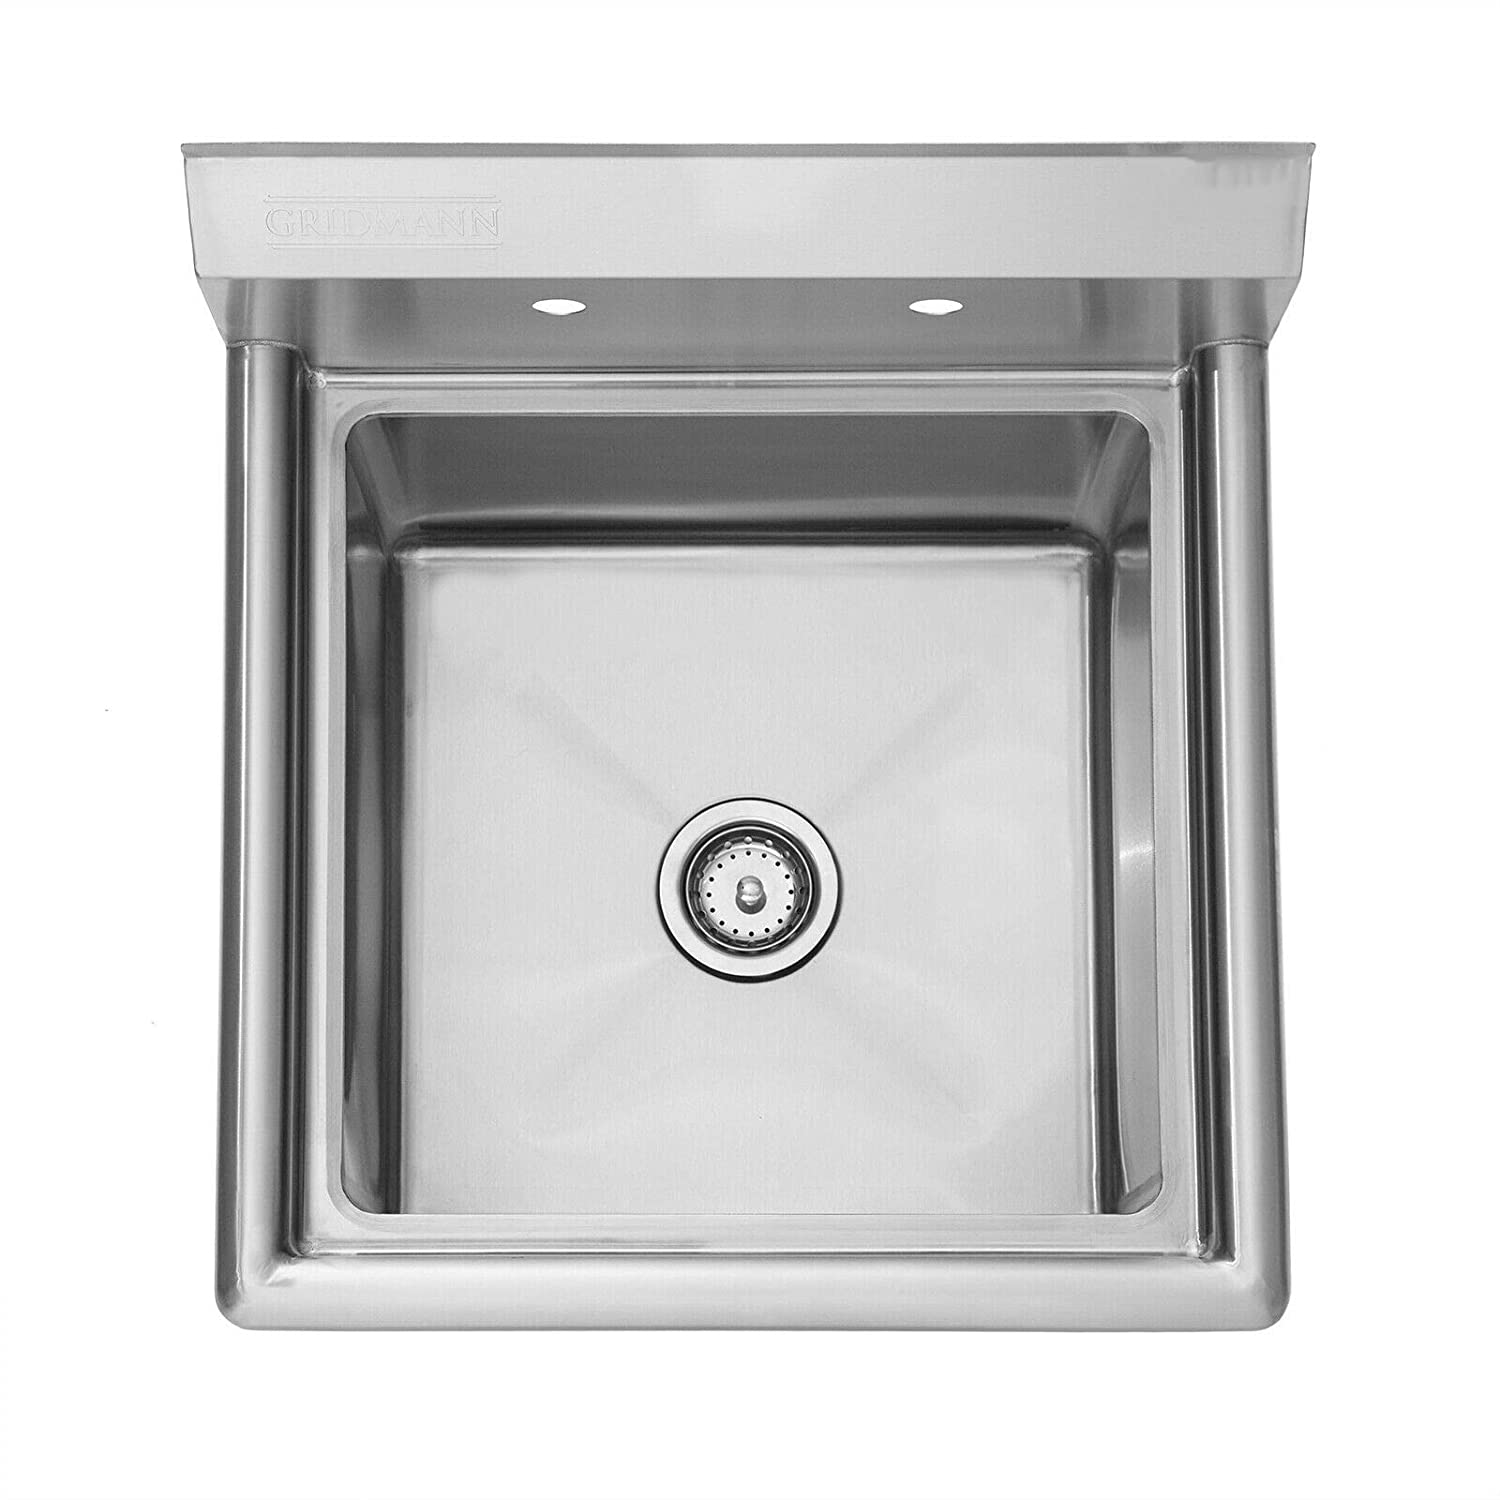 """Durable Sturdy Heavy Duty Large Bowl Size Suitable Safe Cirocco 23.5/"""" Wall Mount Stainless Steel Utility Sink Silver For Home Office Kitchen Bar Restaurant Laundry Cafeteria Garage Commercial Use"""